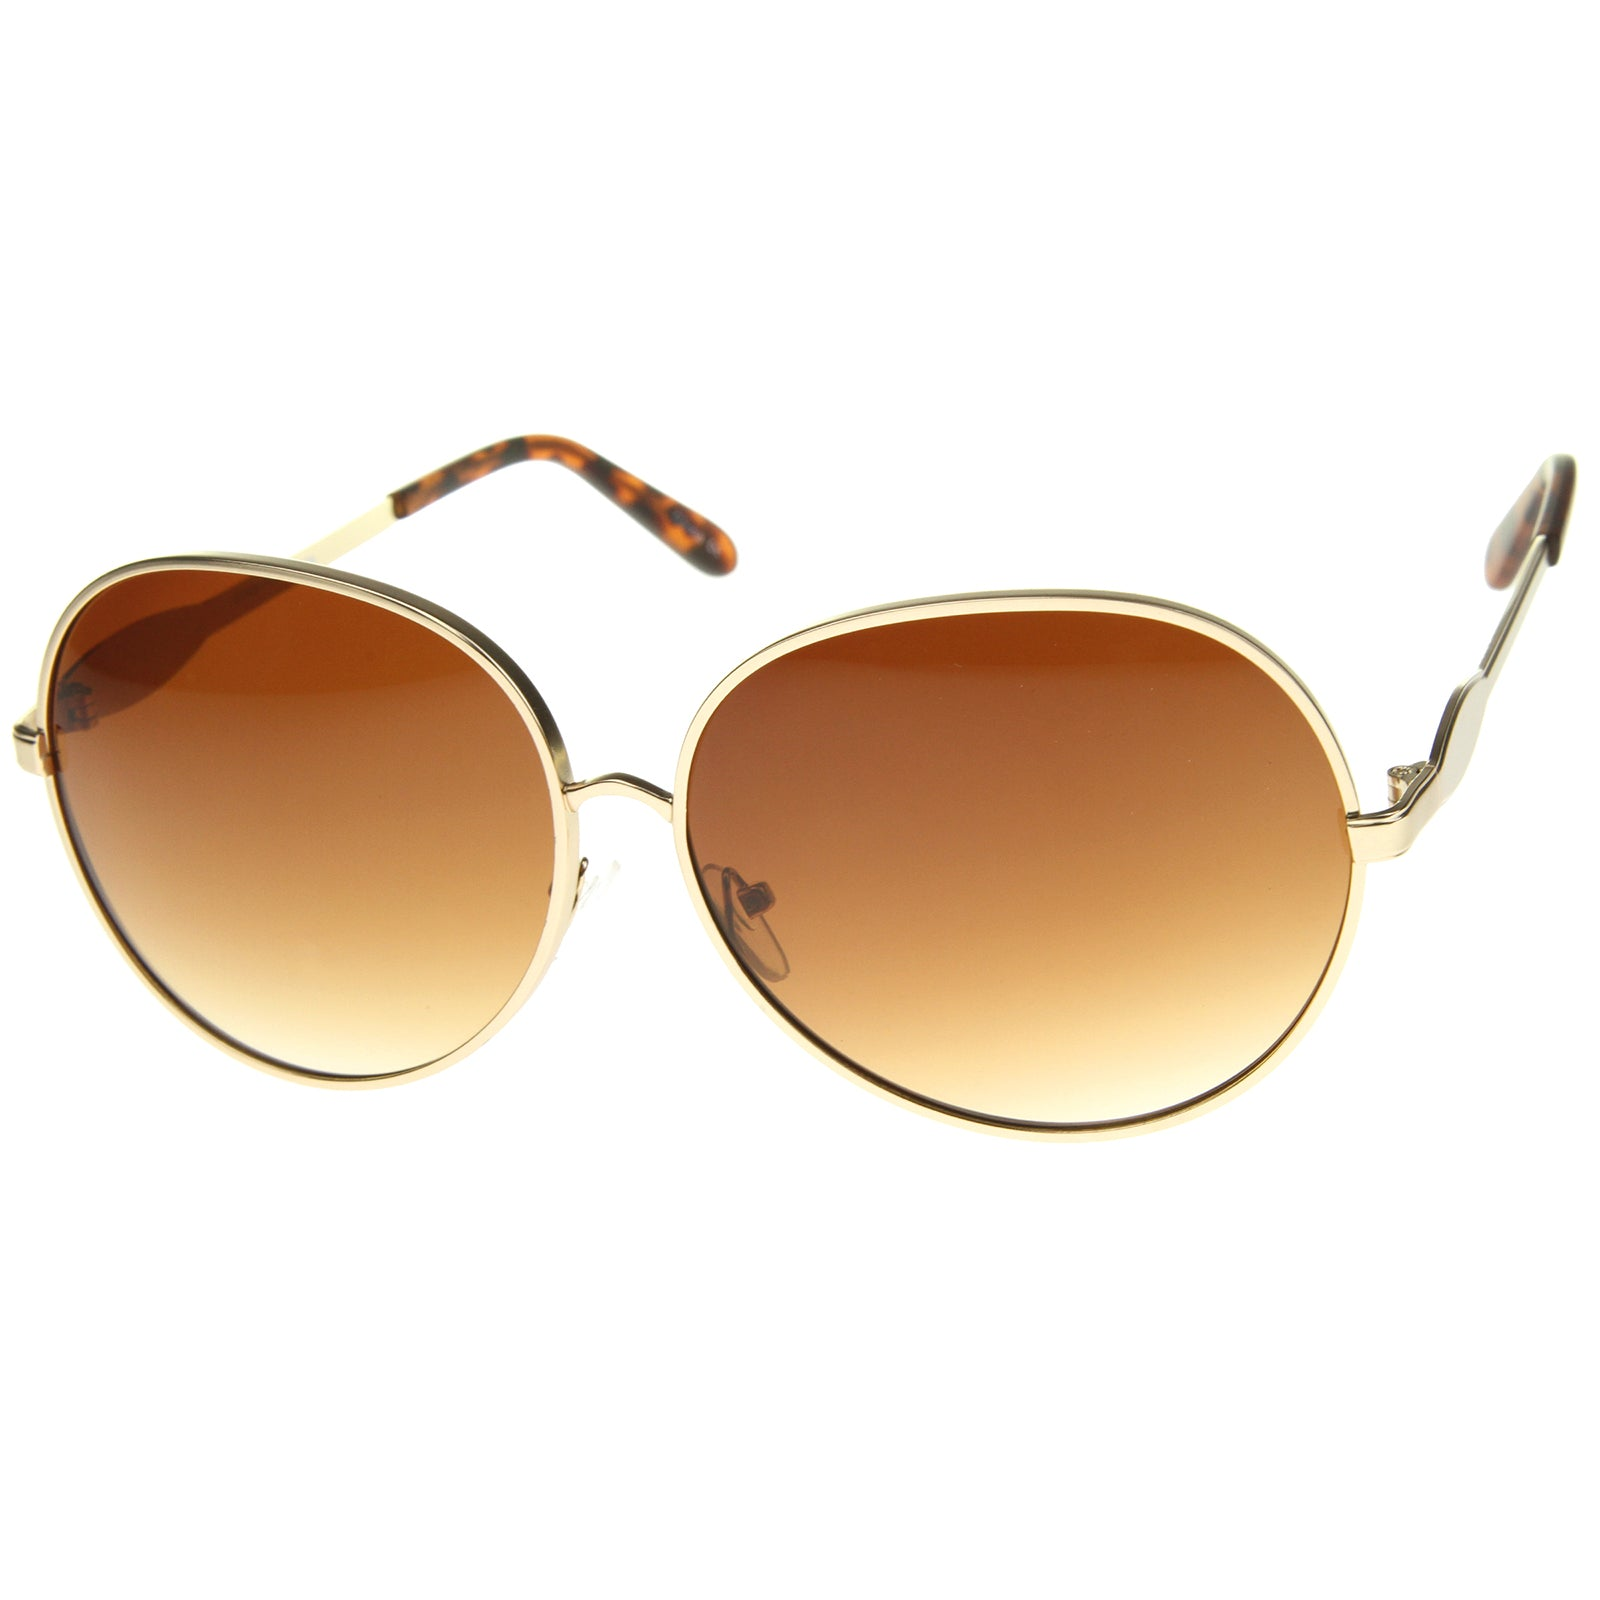 Womens Glam Full Metal Frame Oversized Round Sunglasses 63mm - sunglass.la - 10